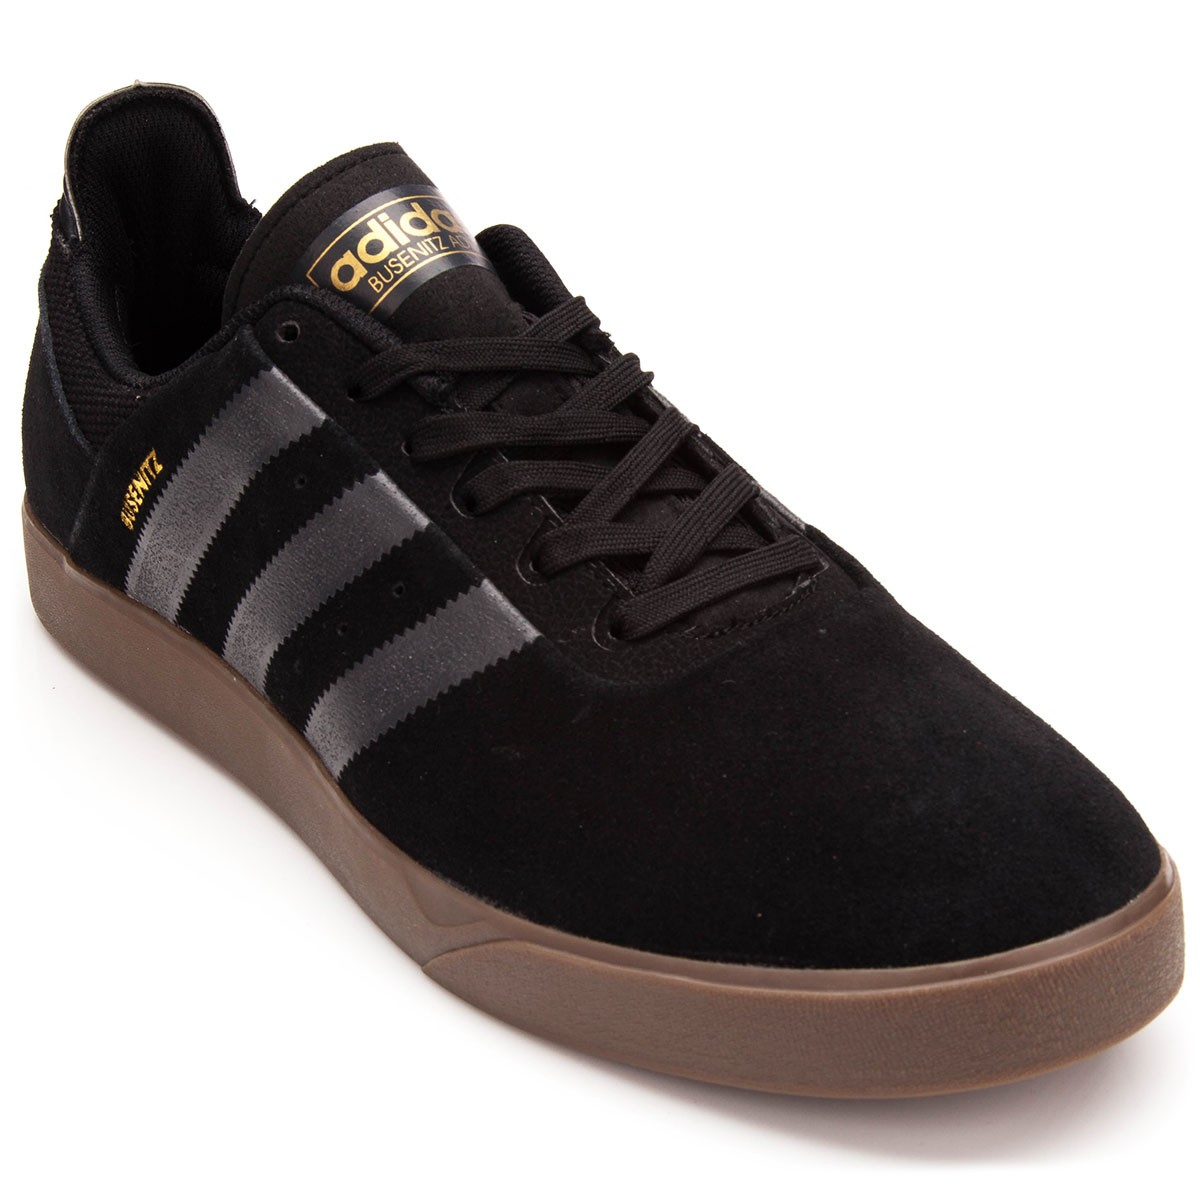 super cute 9102a 209f2 Adidas Busenitz Adv Shoes - BlackCarbonGum - 10.0